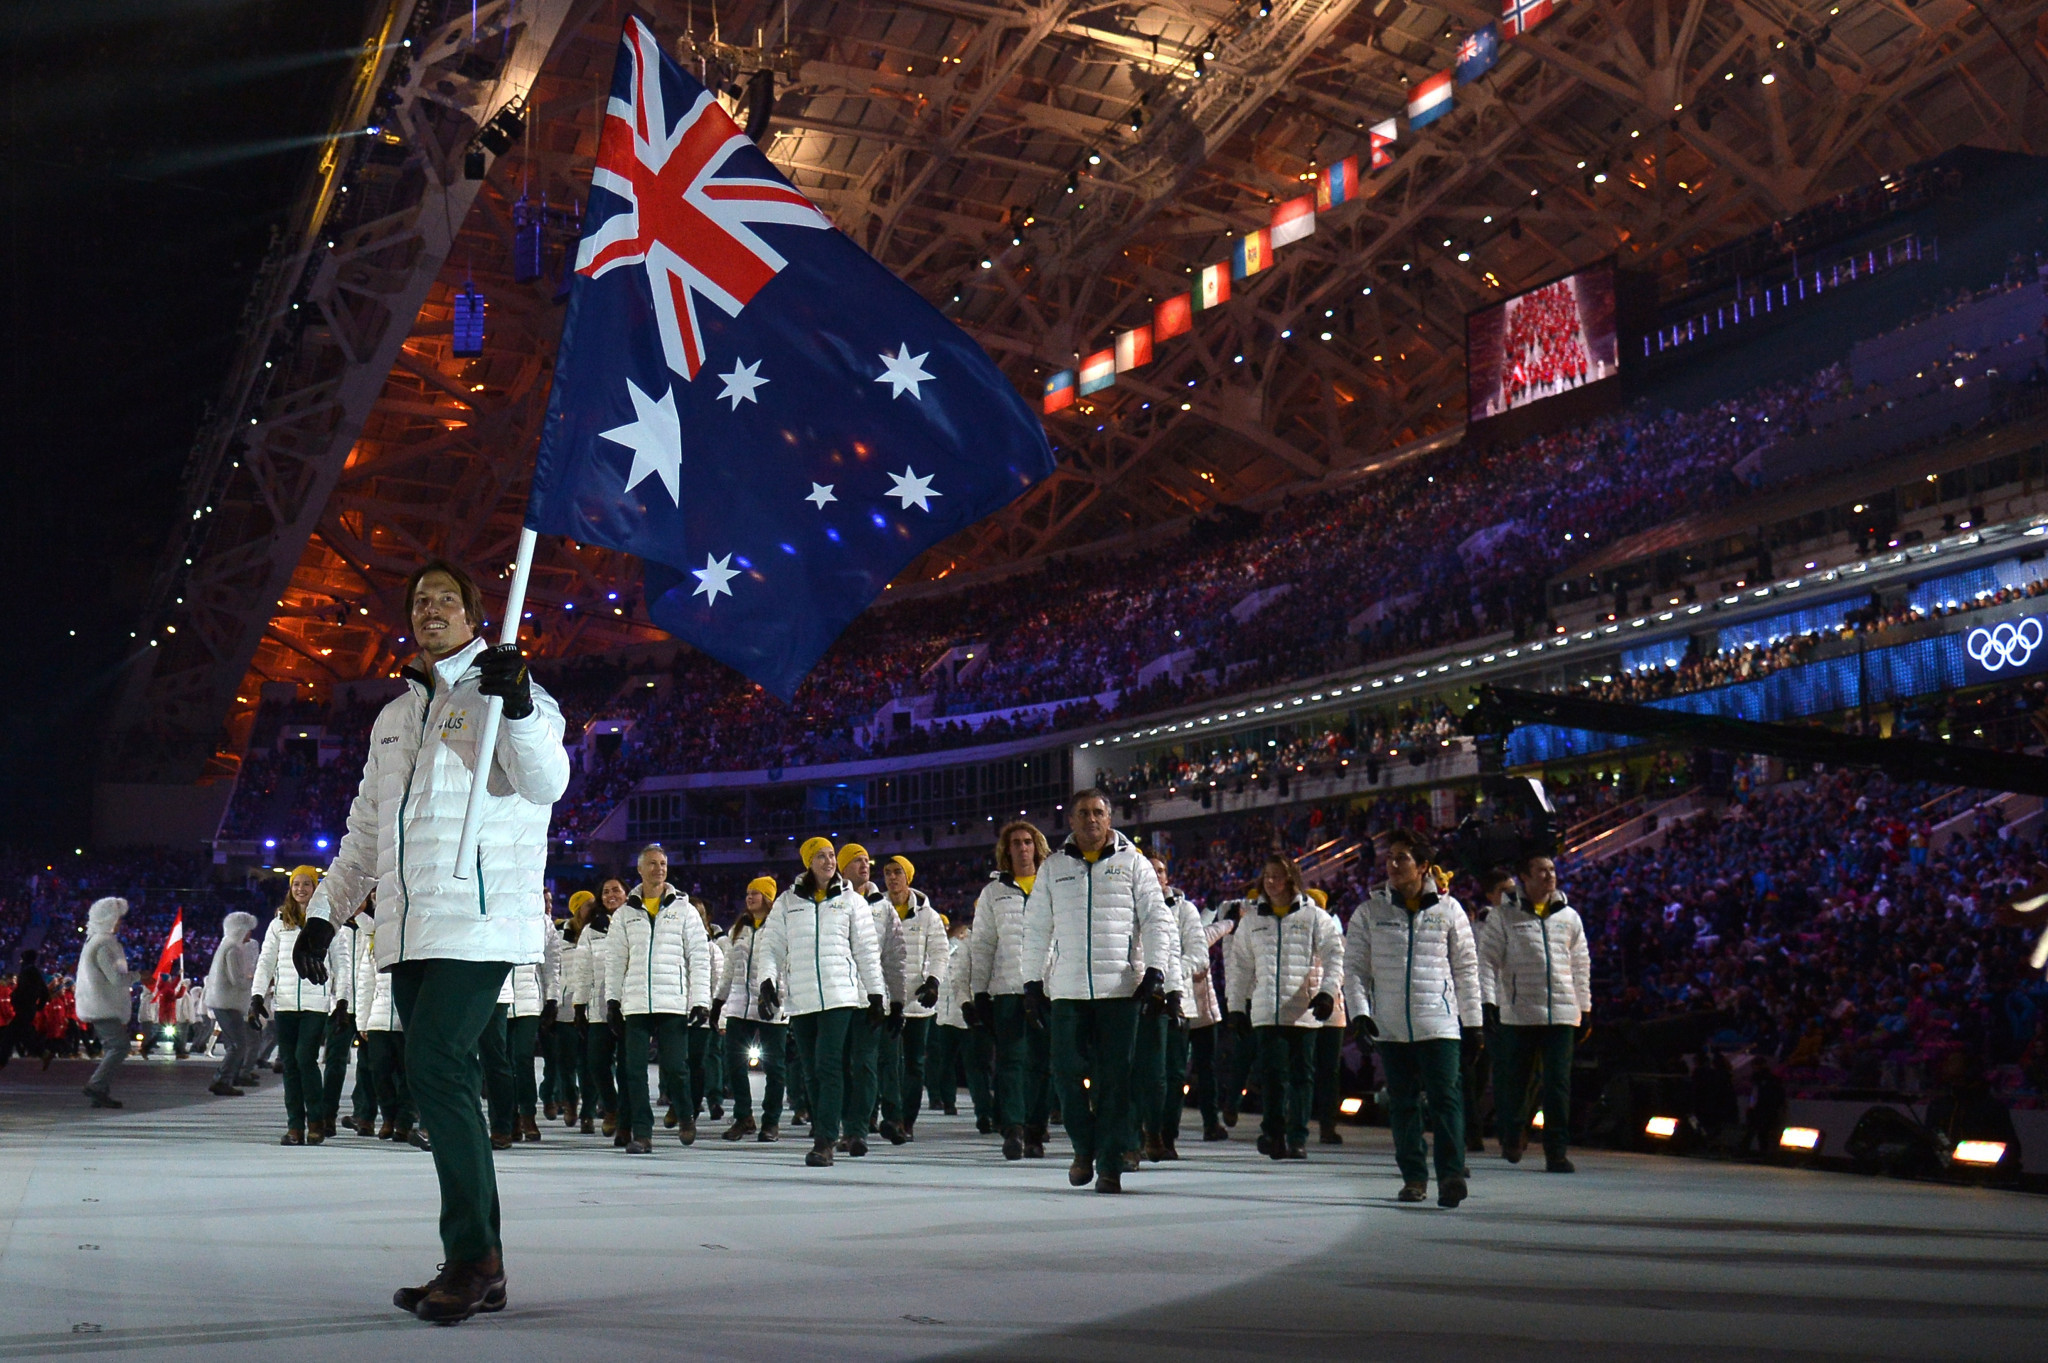 Alex Pullin was Australia's flagbearer at the Opening Ceremony for the Sochi 2014 Winter Olympic Games ©Getty Images